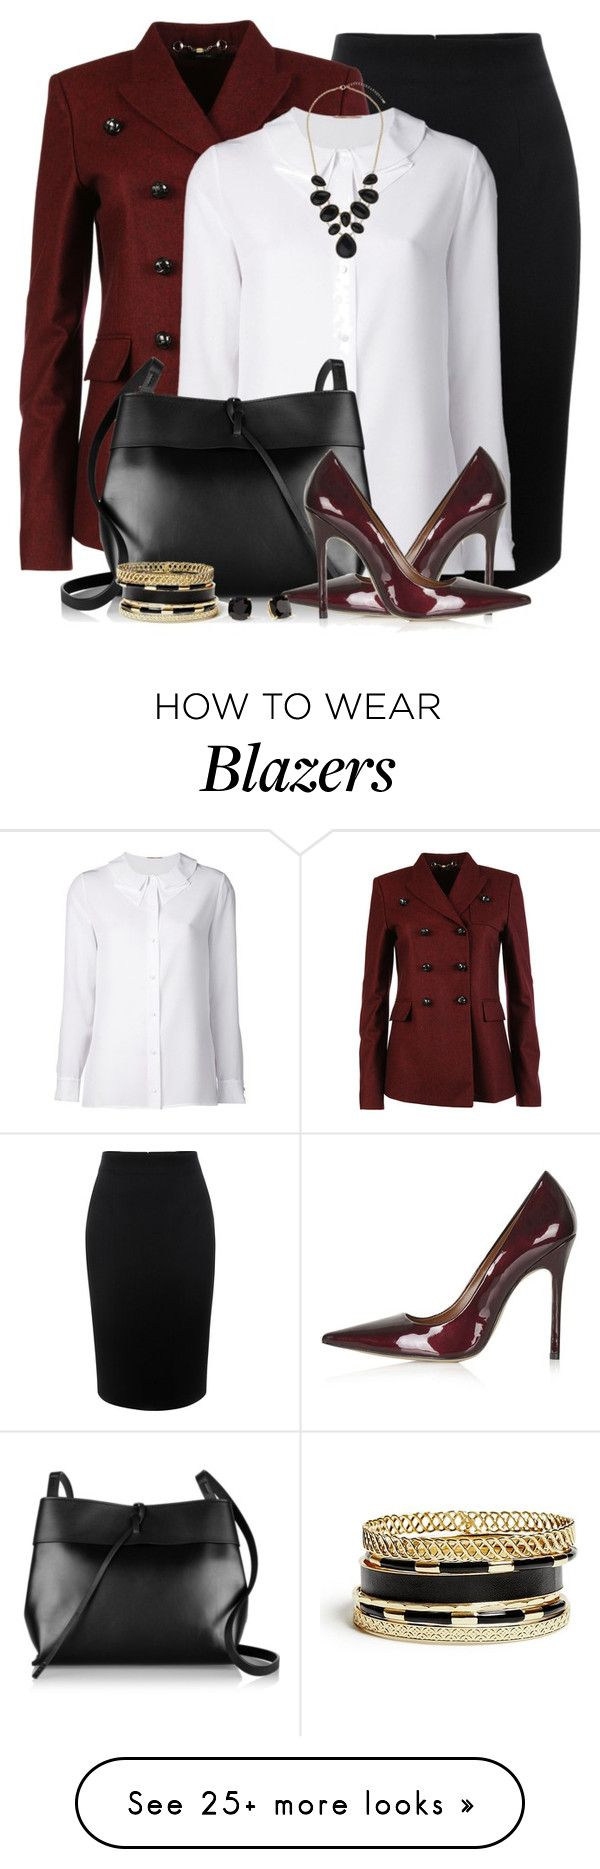 """""""Office Ready"""" by brendariley-1 on Polyvore featuring Alexander McQueen, Gucci, Yves Saint Laurent, Kara, Topshop, GUESS, Kate Spade and Dorothy Perkins"""